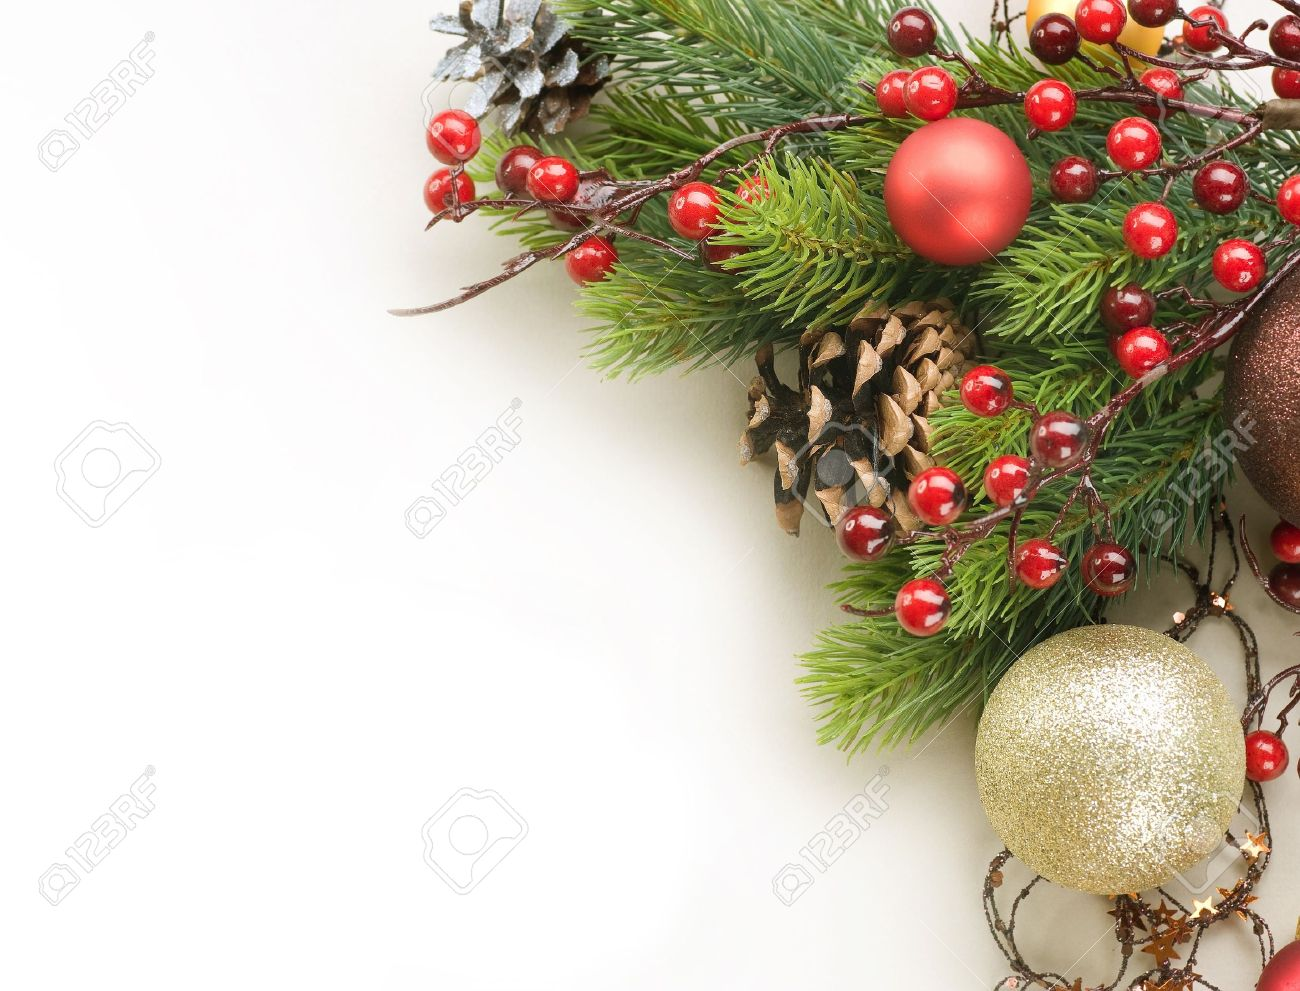 Christmas Borders Stock Photos & Pictures. Royalty Free Christmas ...